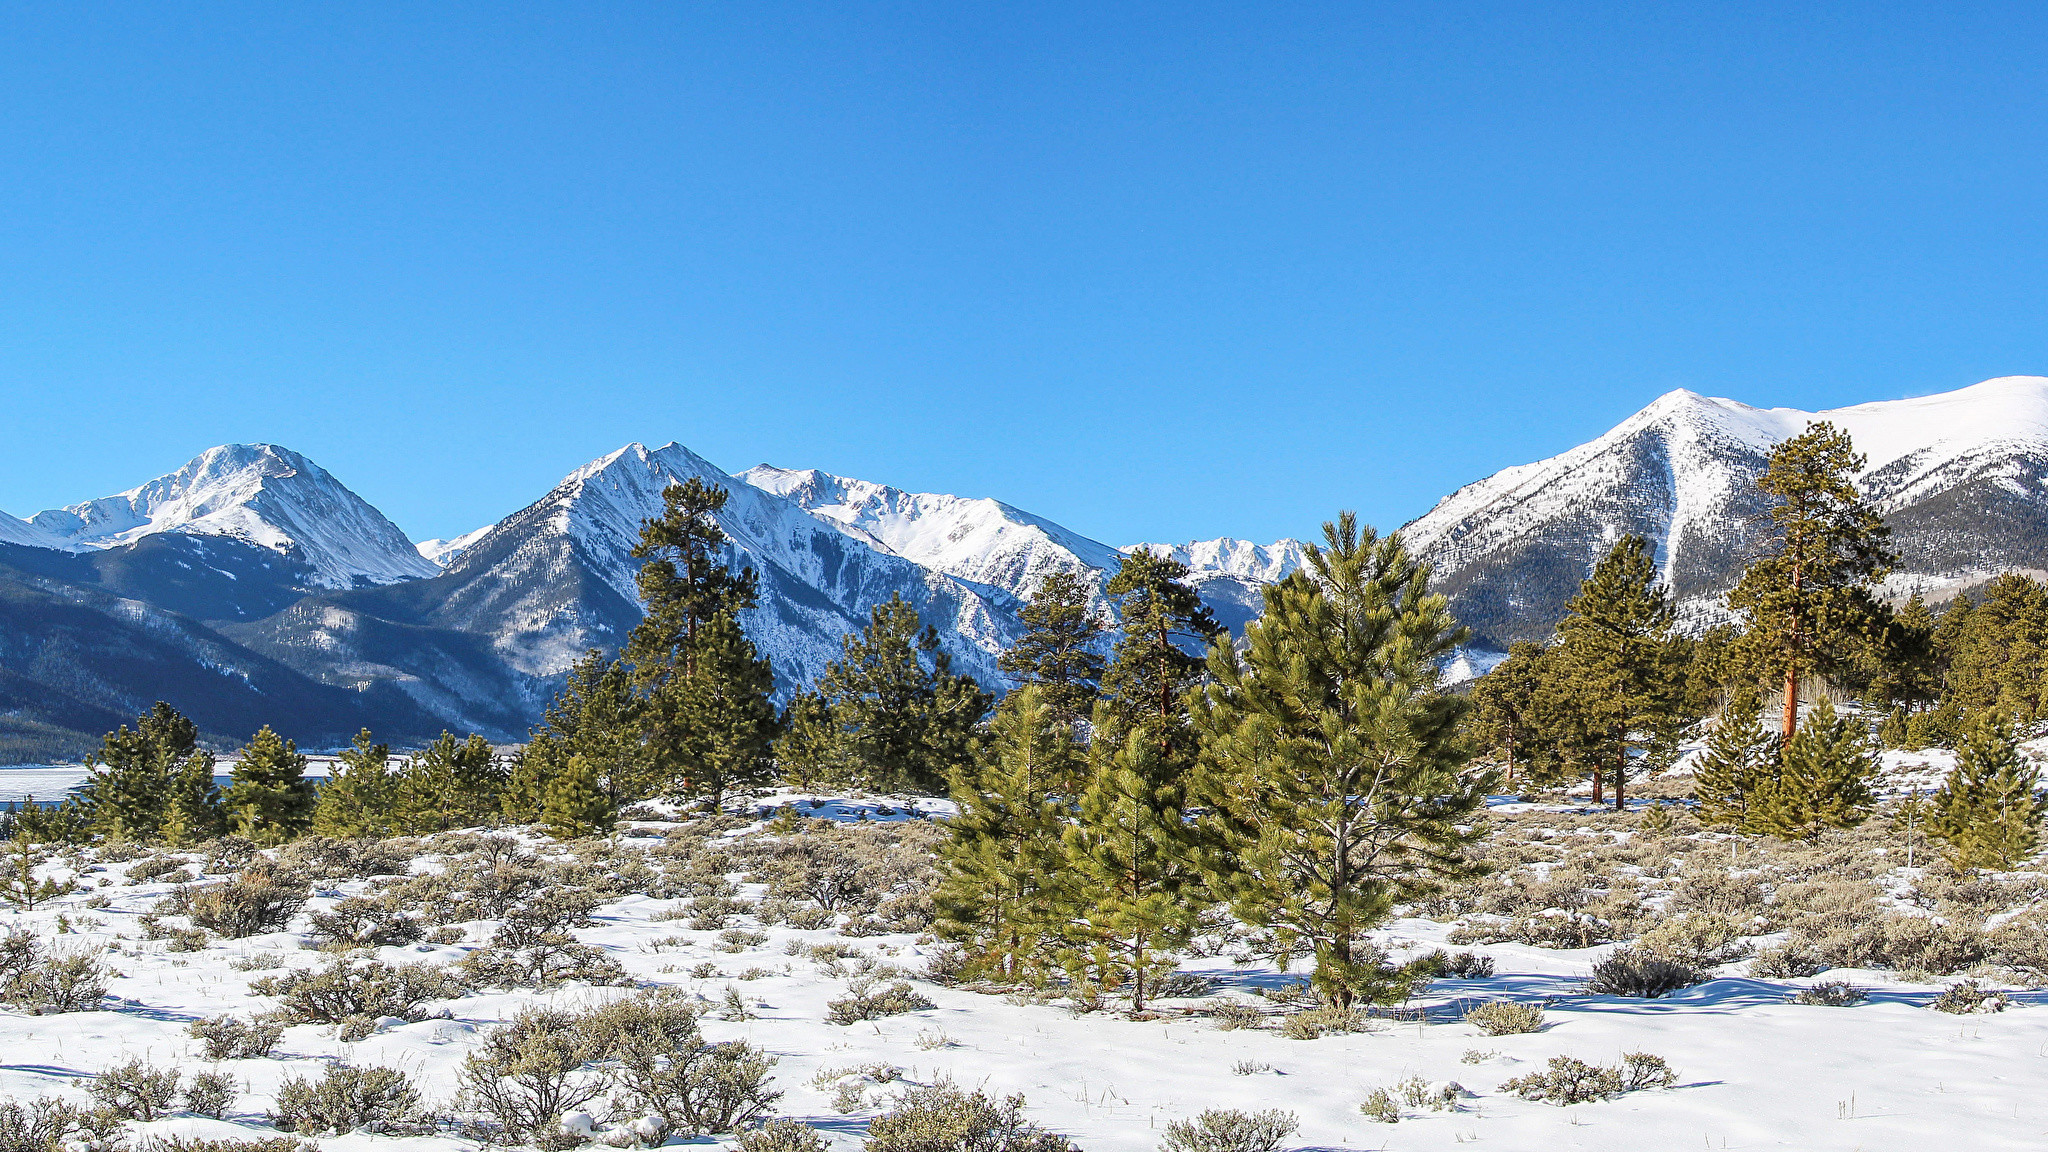 Res: 2048x1152, 1920x1080 Rocky Mountain National Park in Colorado US Tourist Place HD  Wallpaper | HD Wallpapers